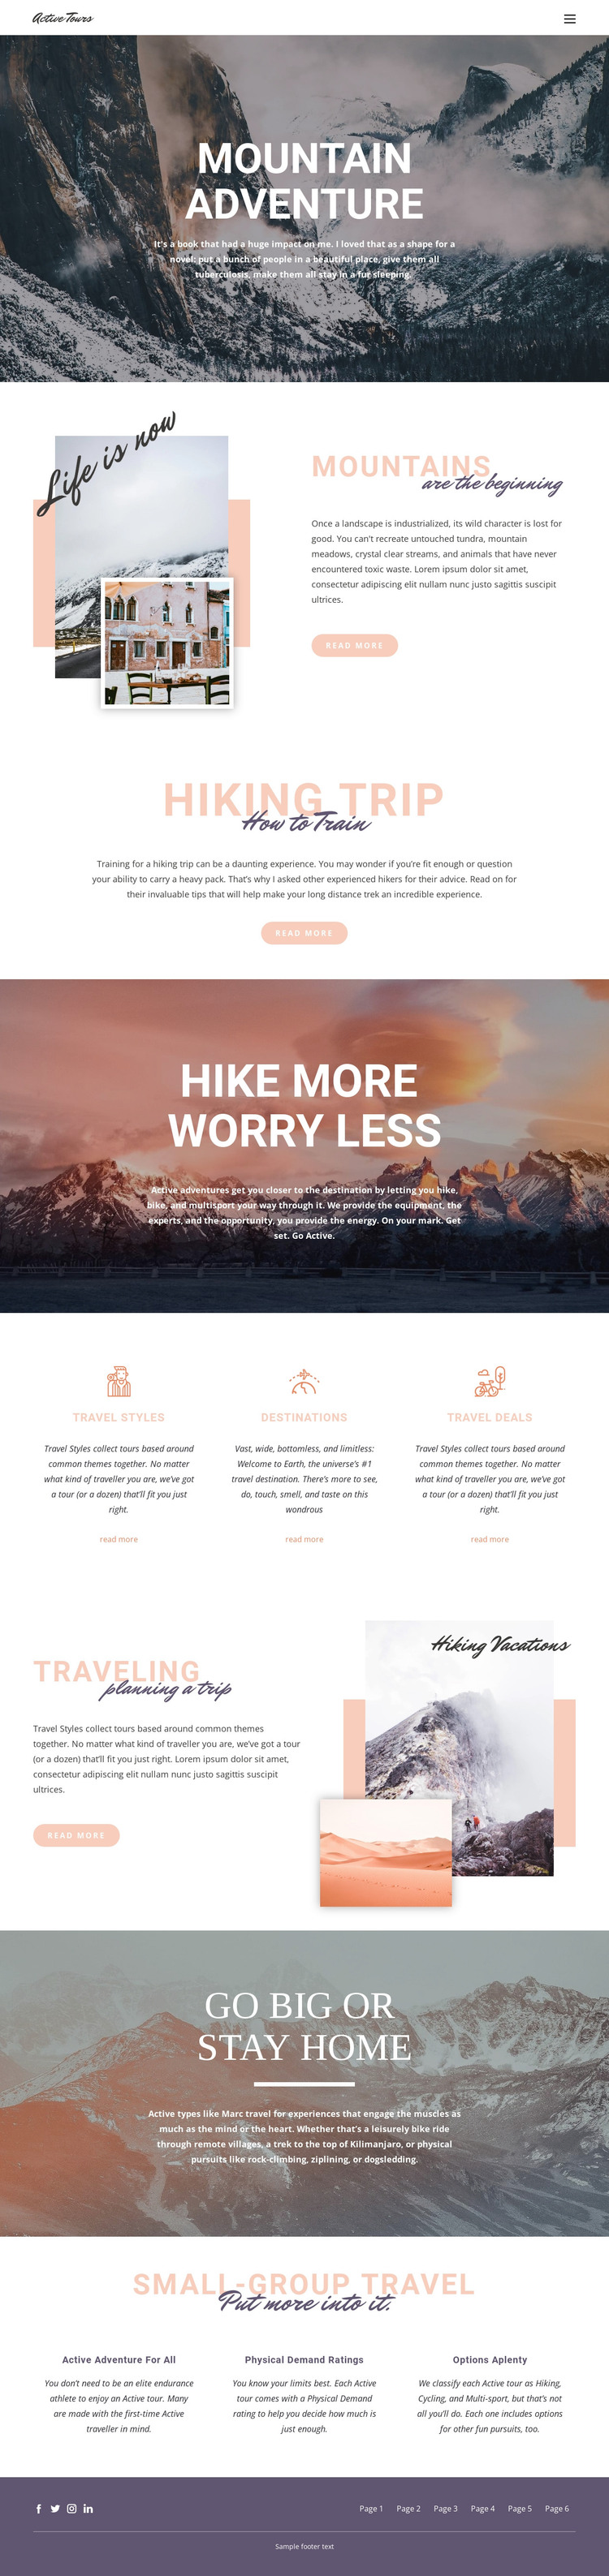 Guided backpacking trips WordPress Theme